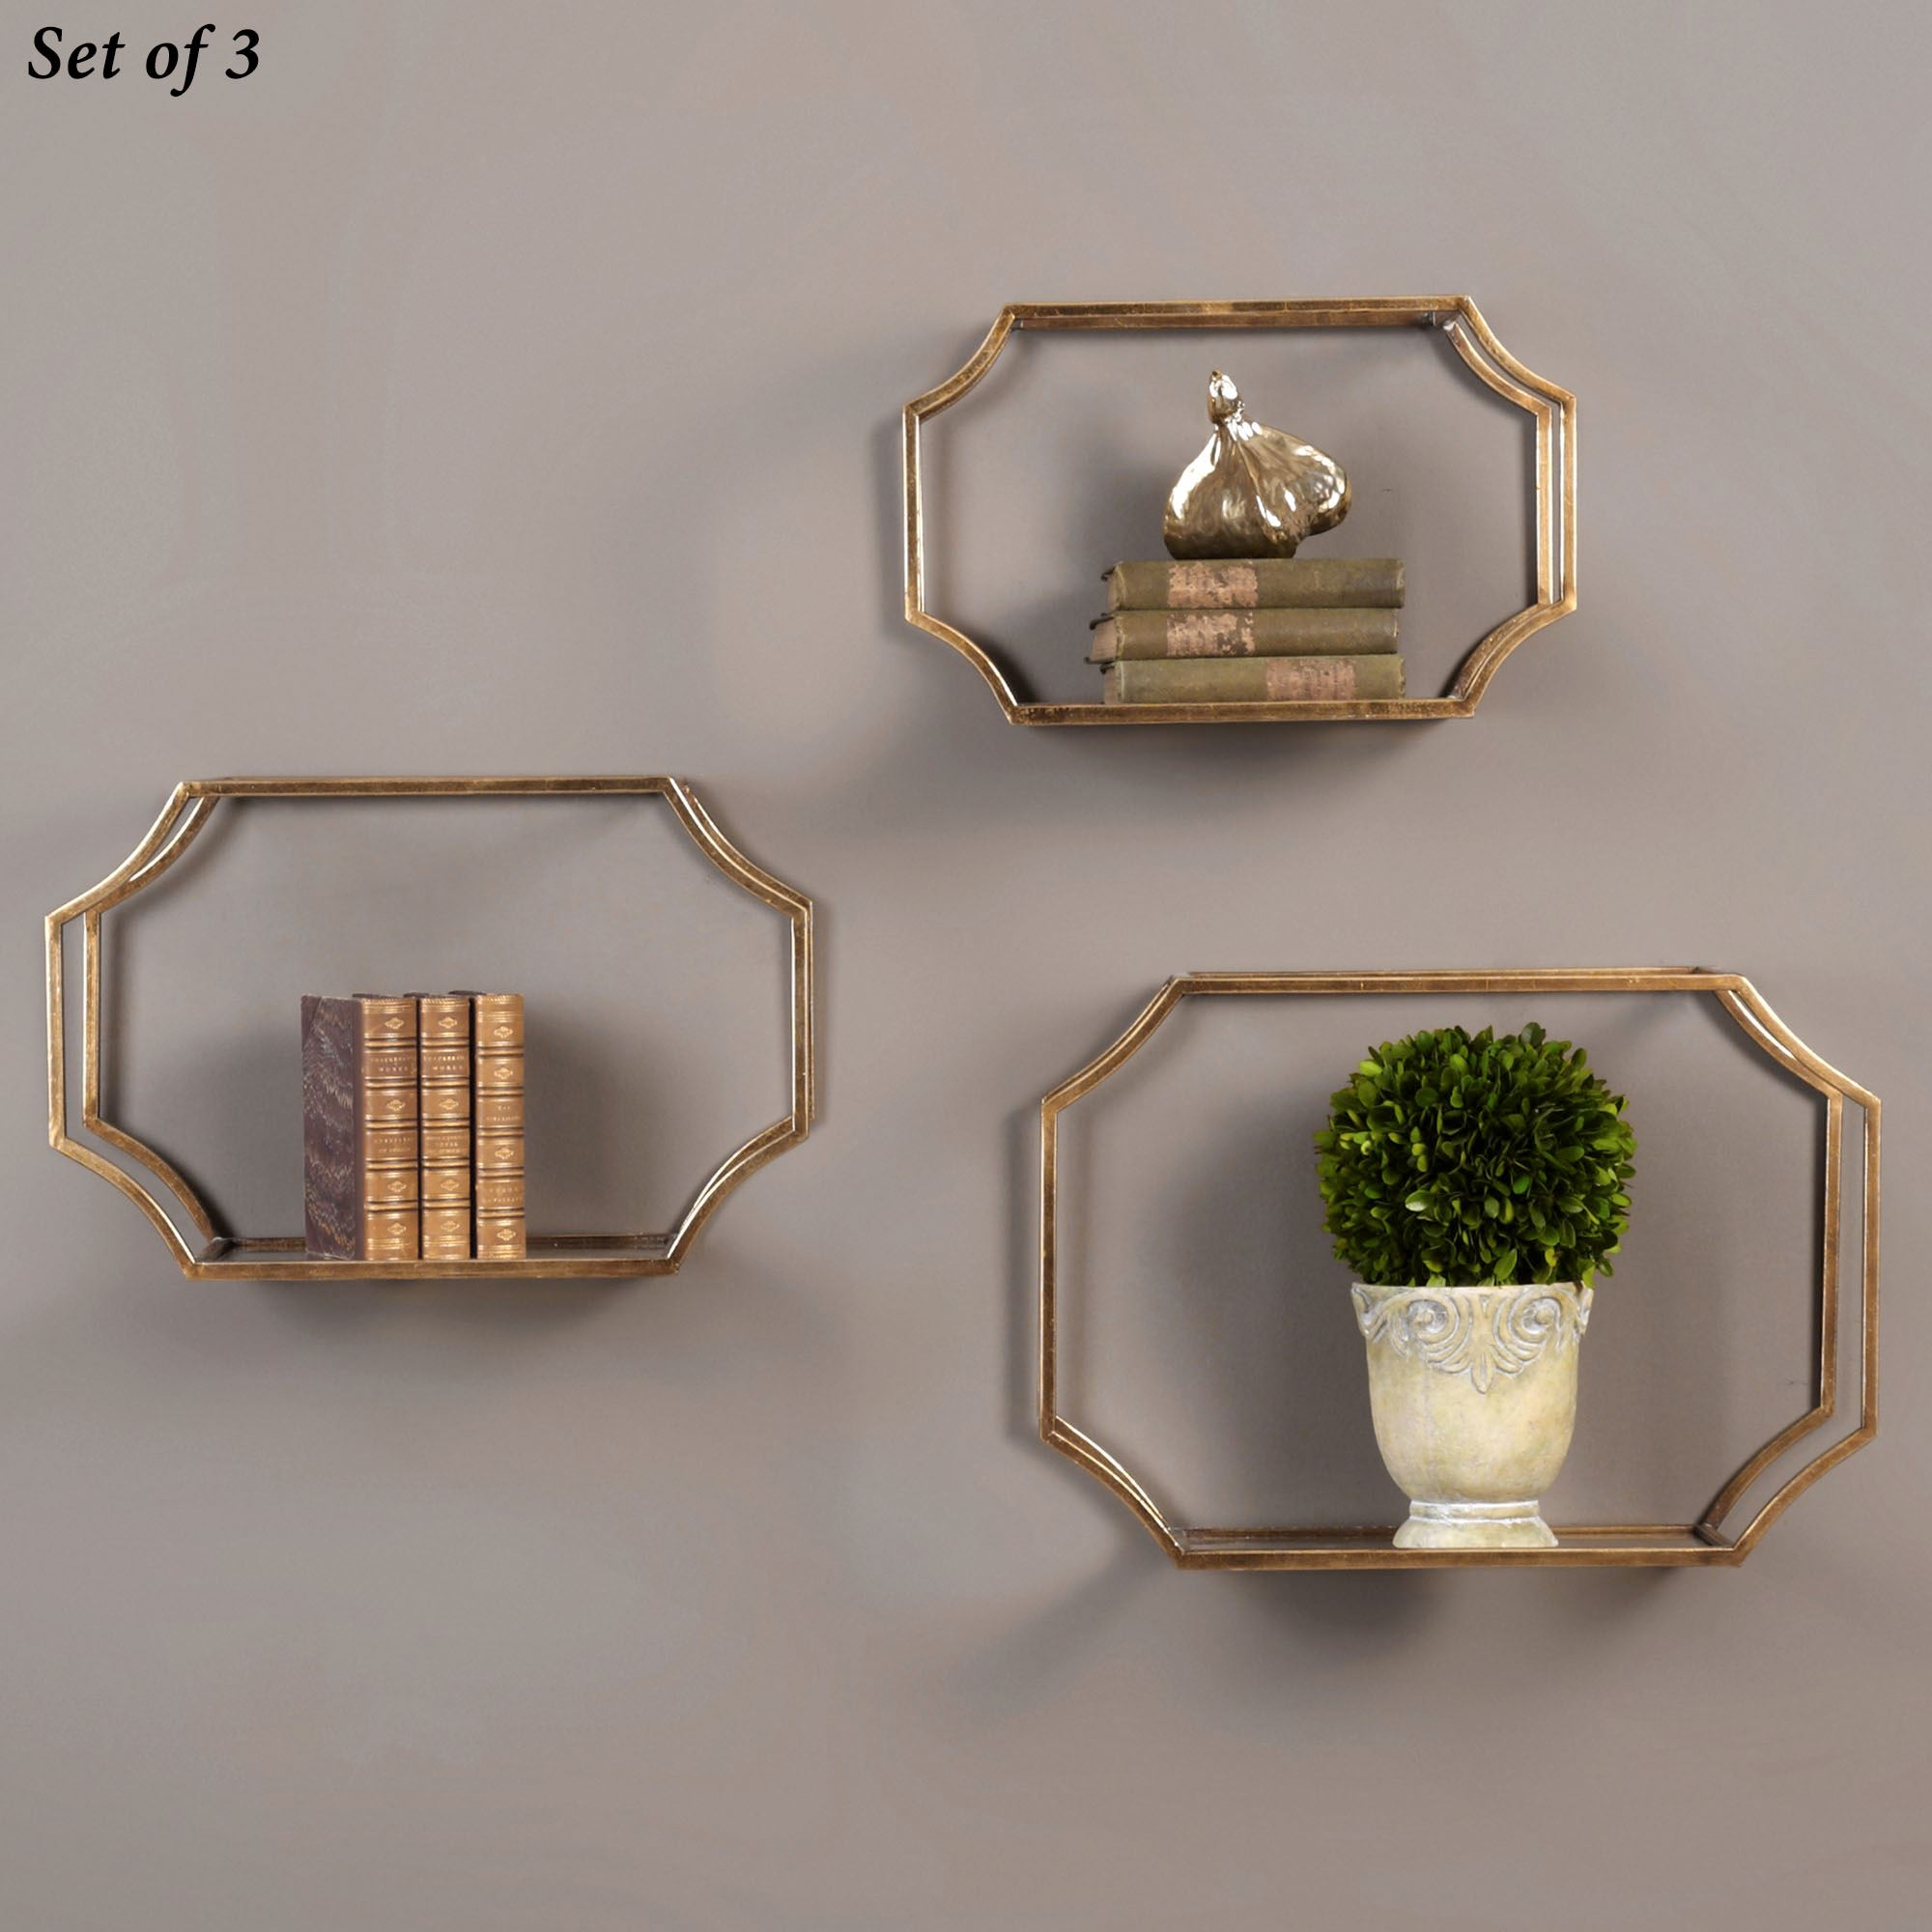 Decorative wall shelves touch of class lindee wall shelves gold set of three amipublicfo Images